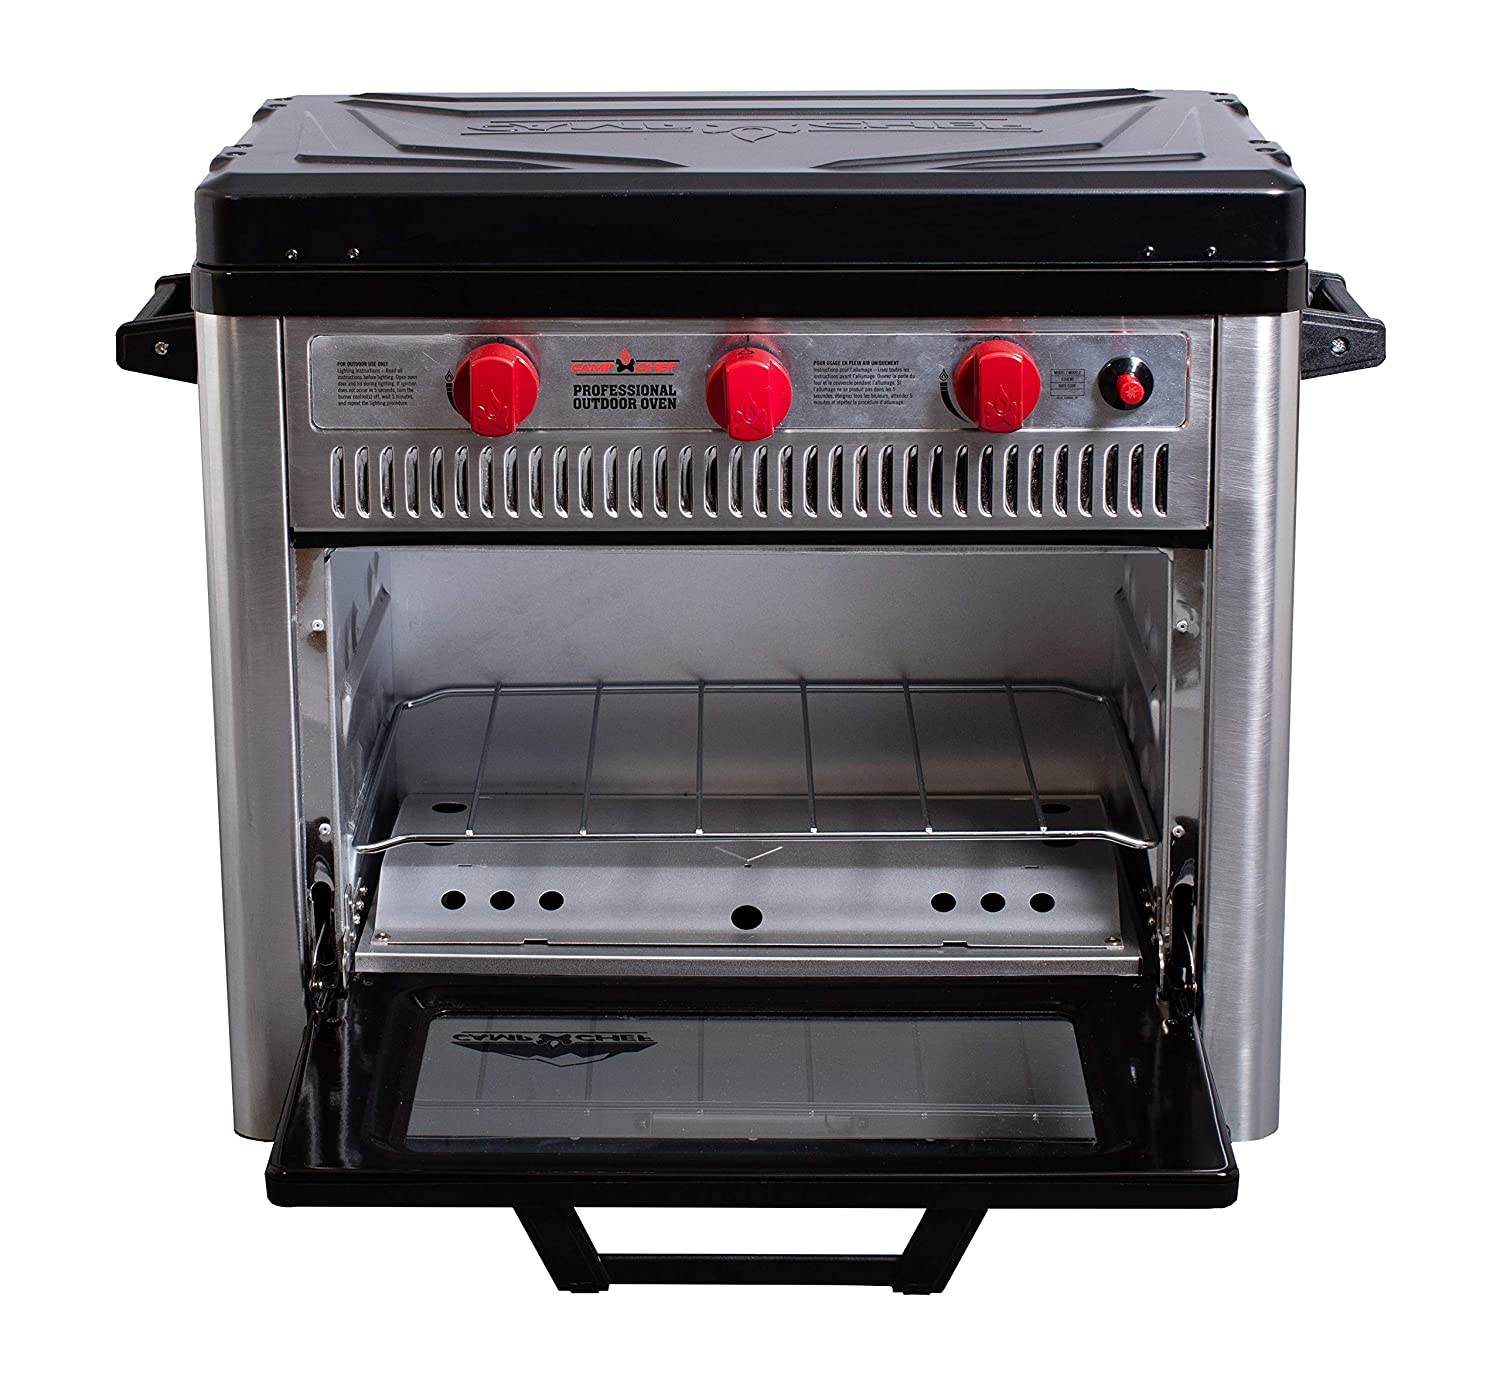 Camp Chef Professional Outdoor Oven with Carry Bag and